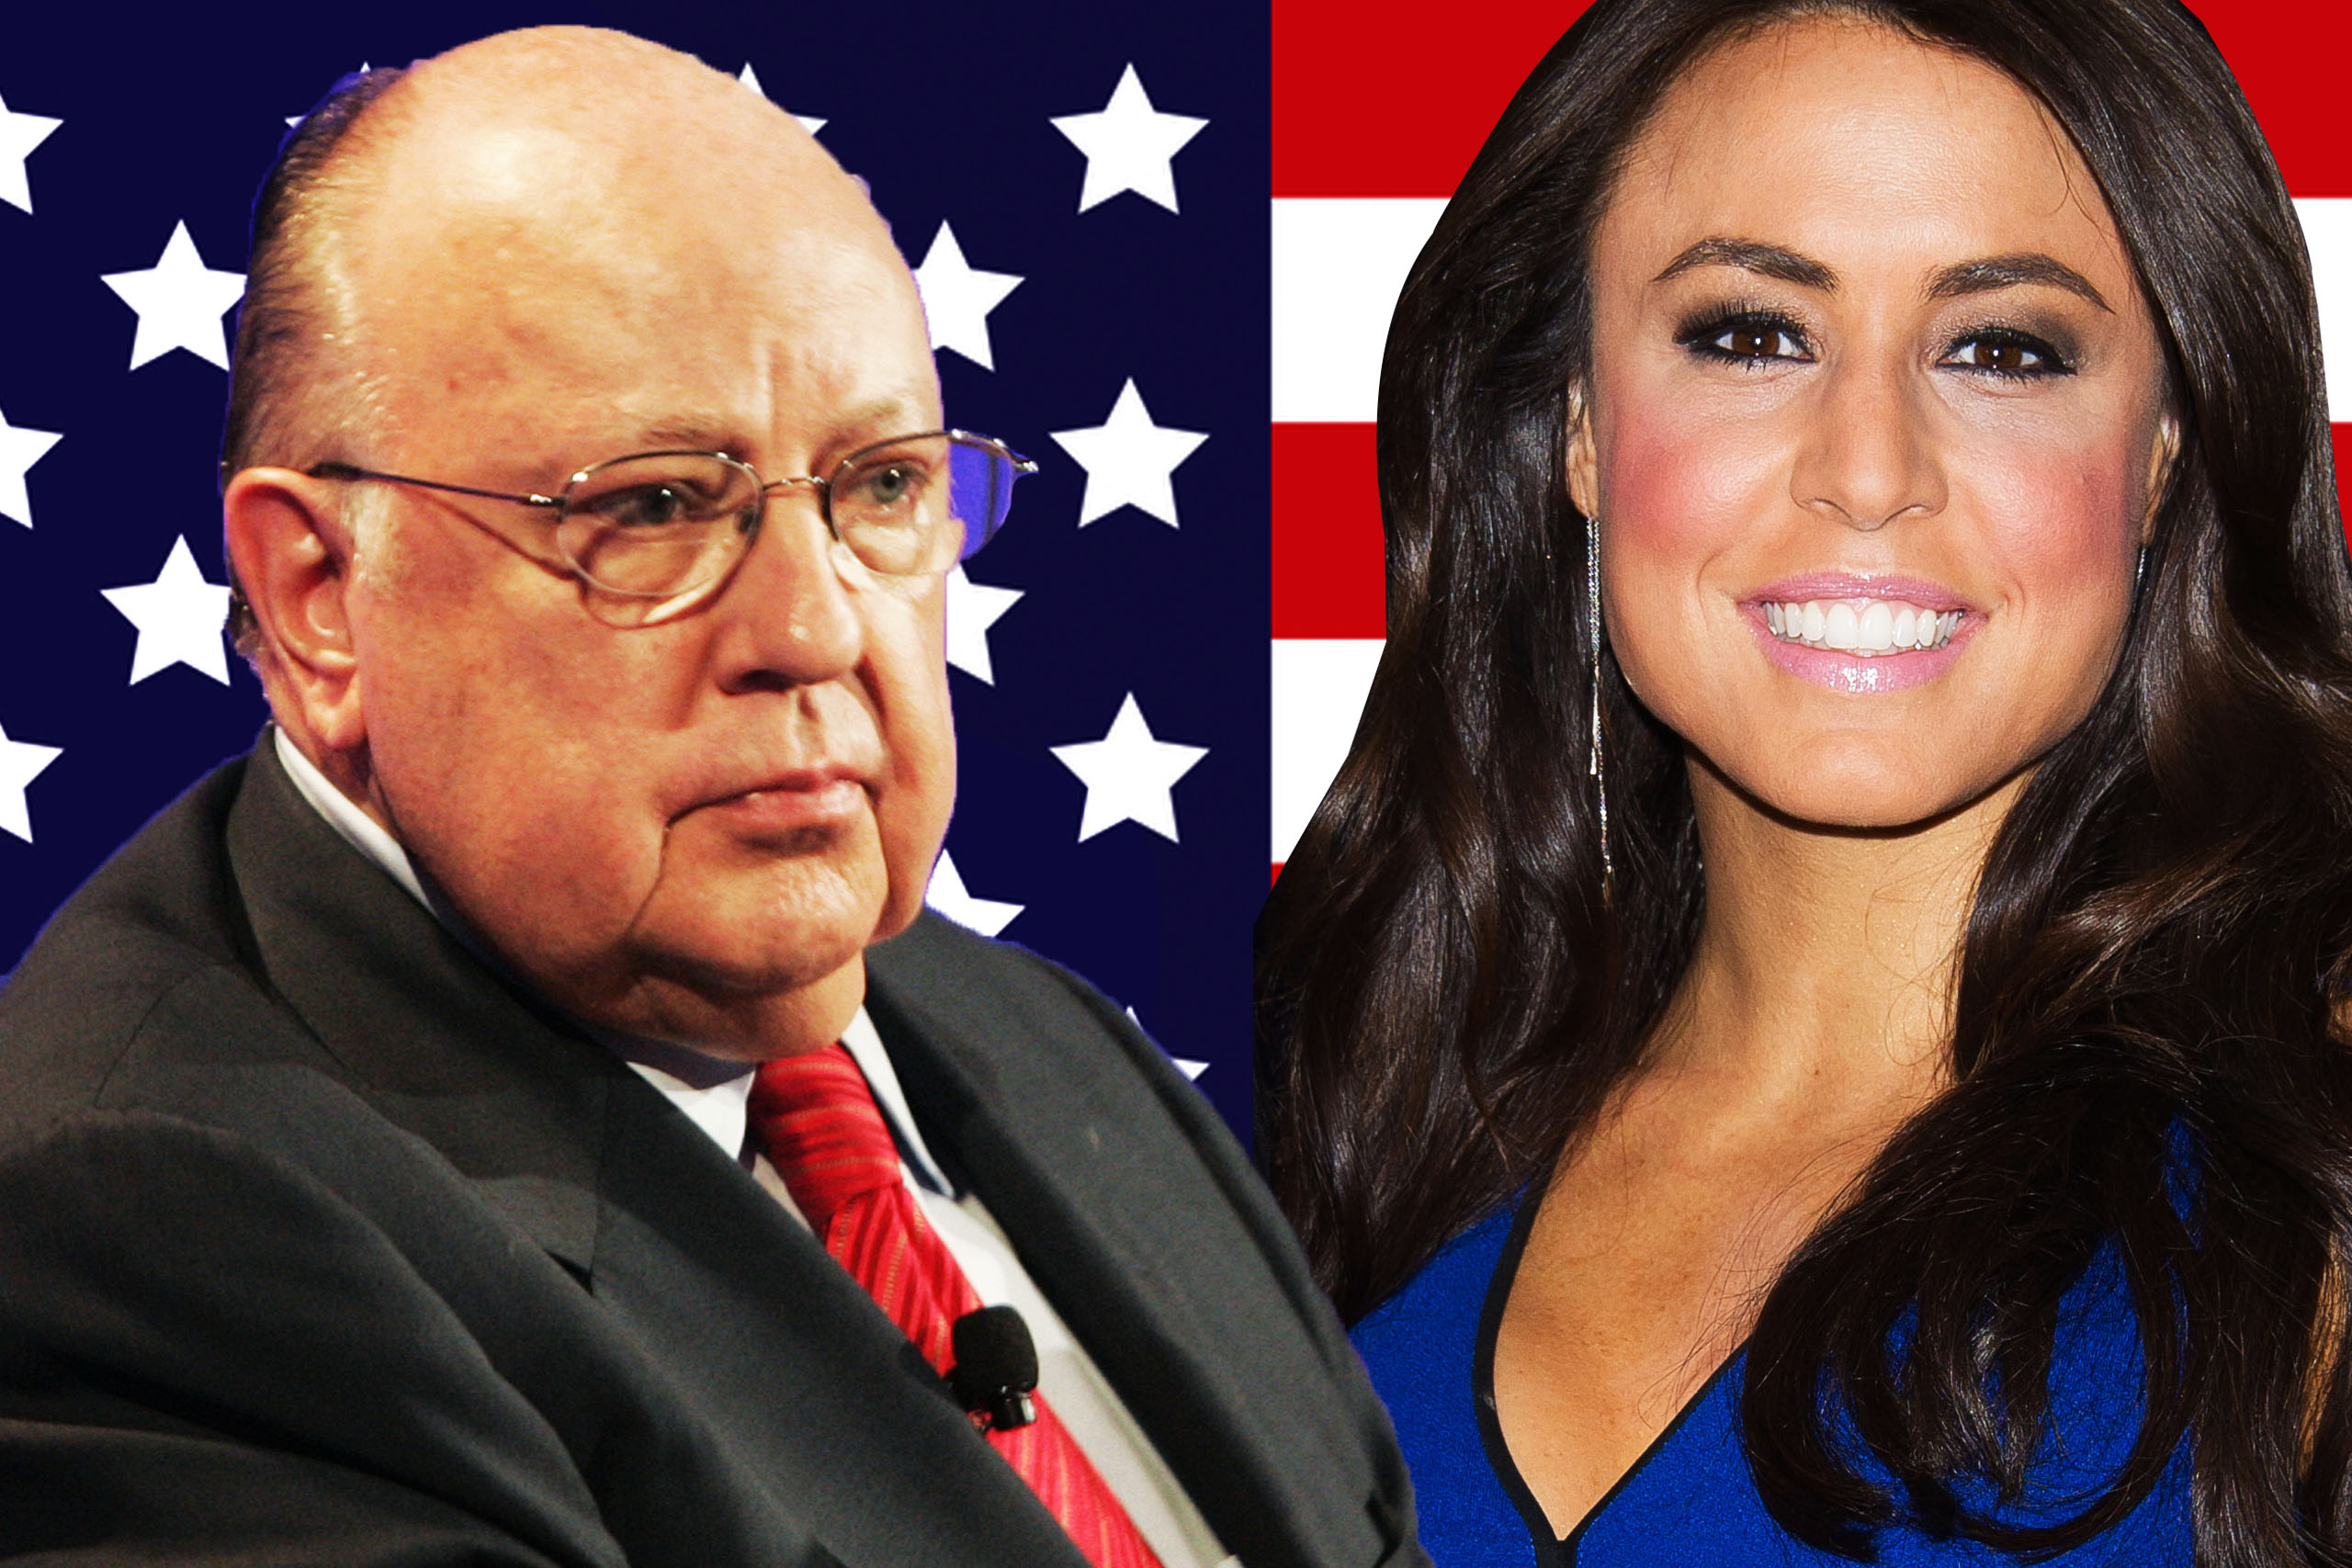 Andrea Tantaros filed sexual harassment lawsuit against former Fox News CEO Roger Alies in 2016.